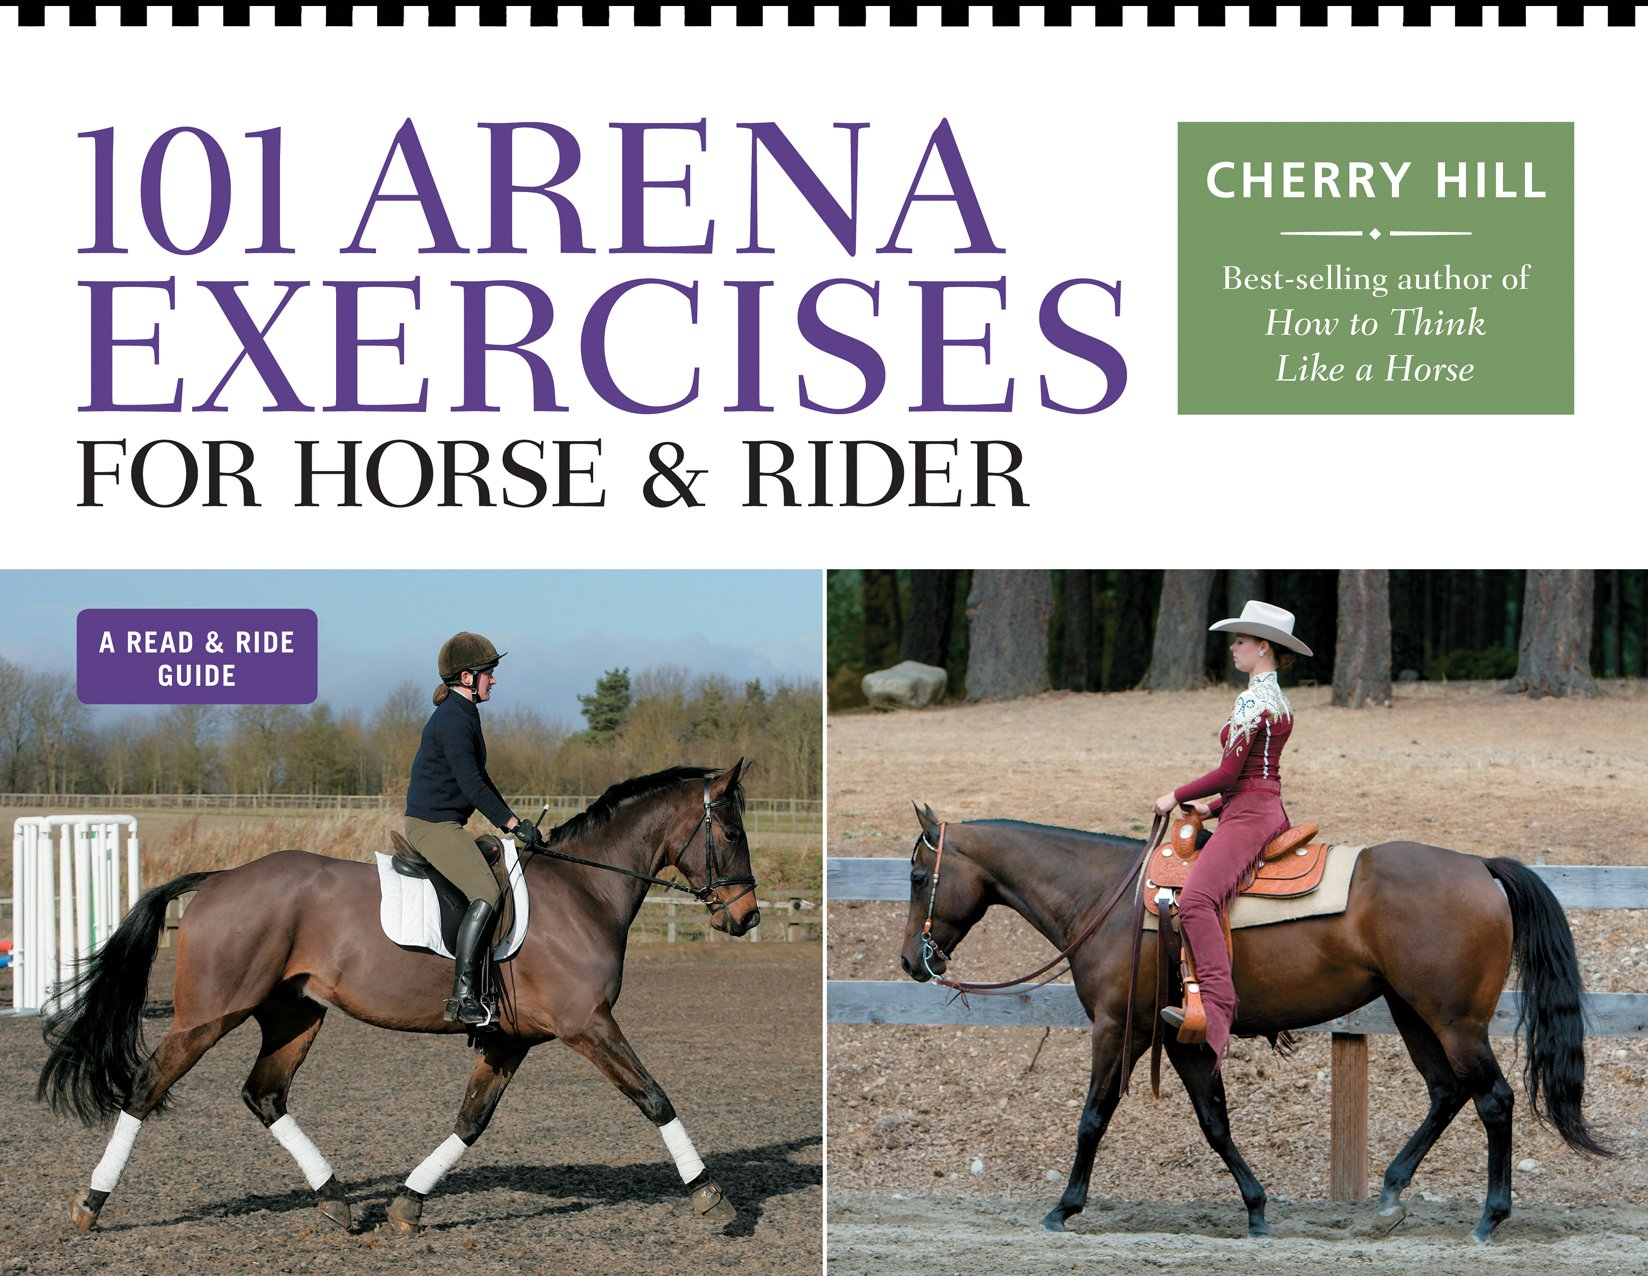 101 Arena Exercises for Horse & Rider (Read & Ride): Cherry Hill, Carla  Wennberg: 0037038003161: Amazon.com: Books